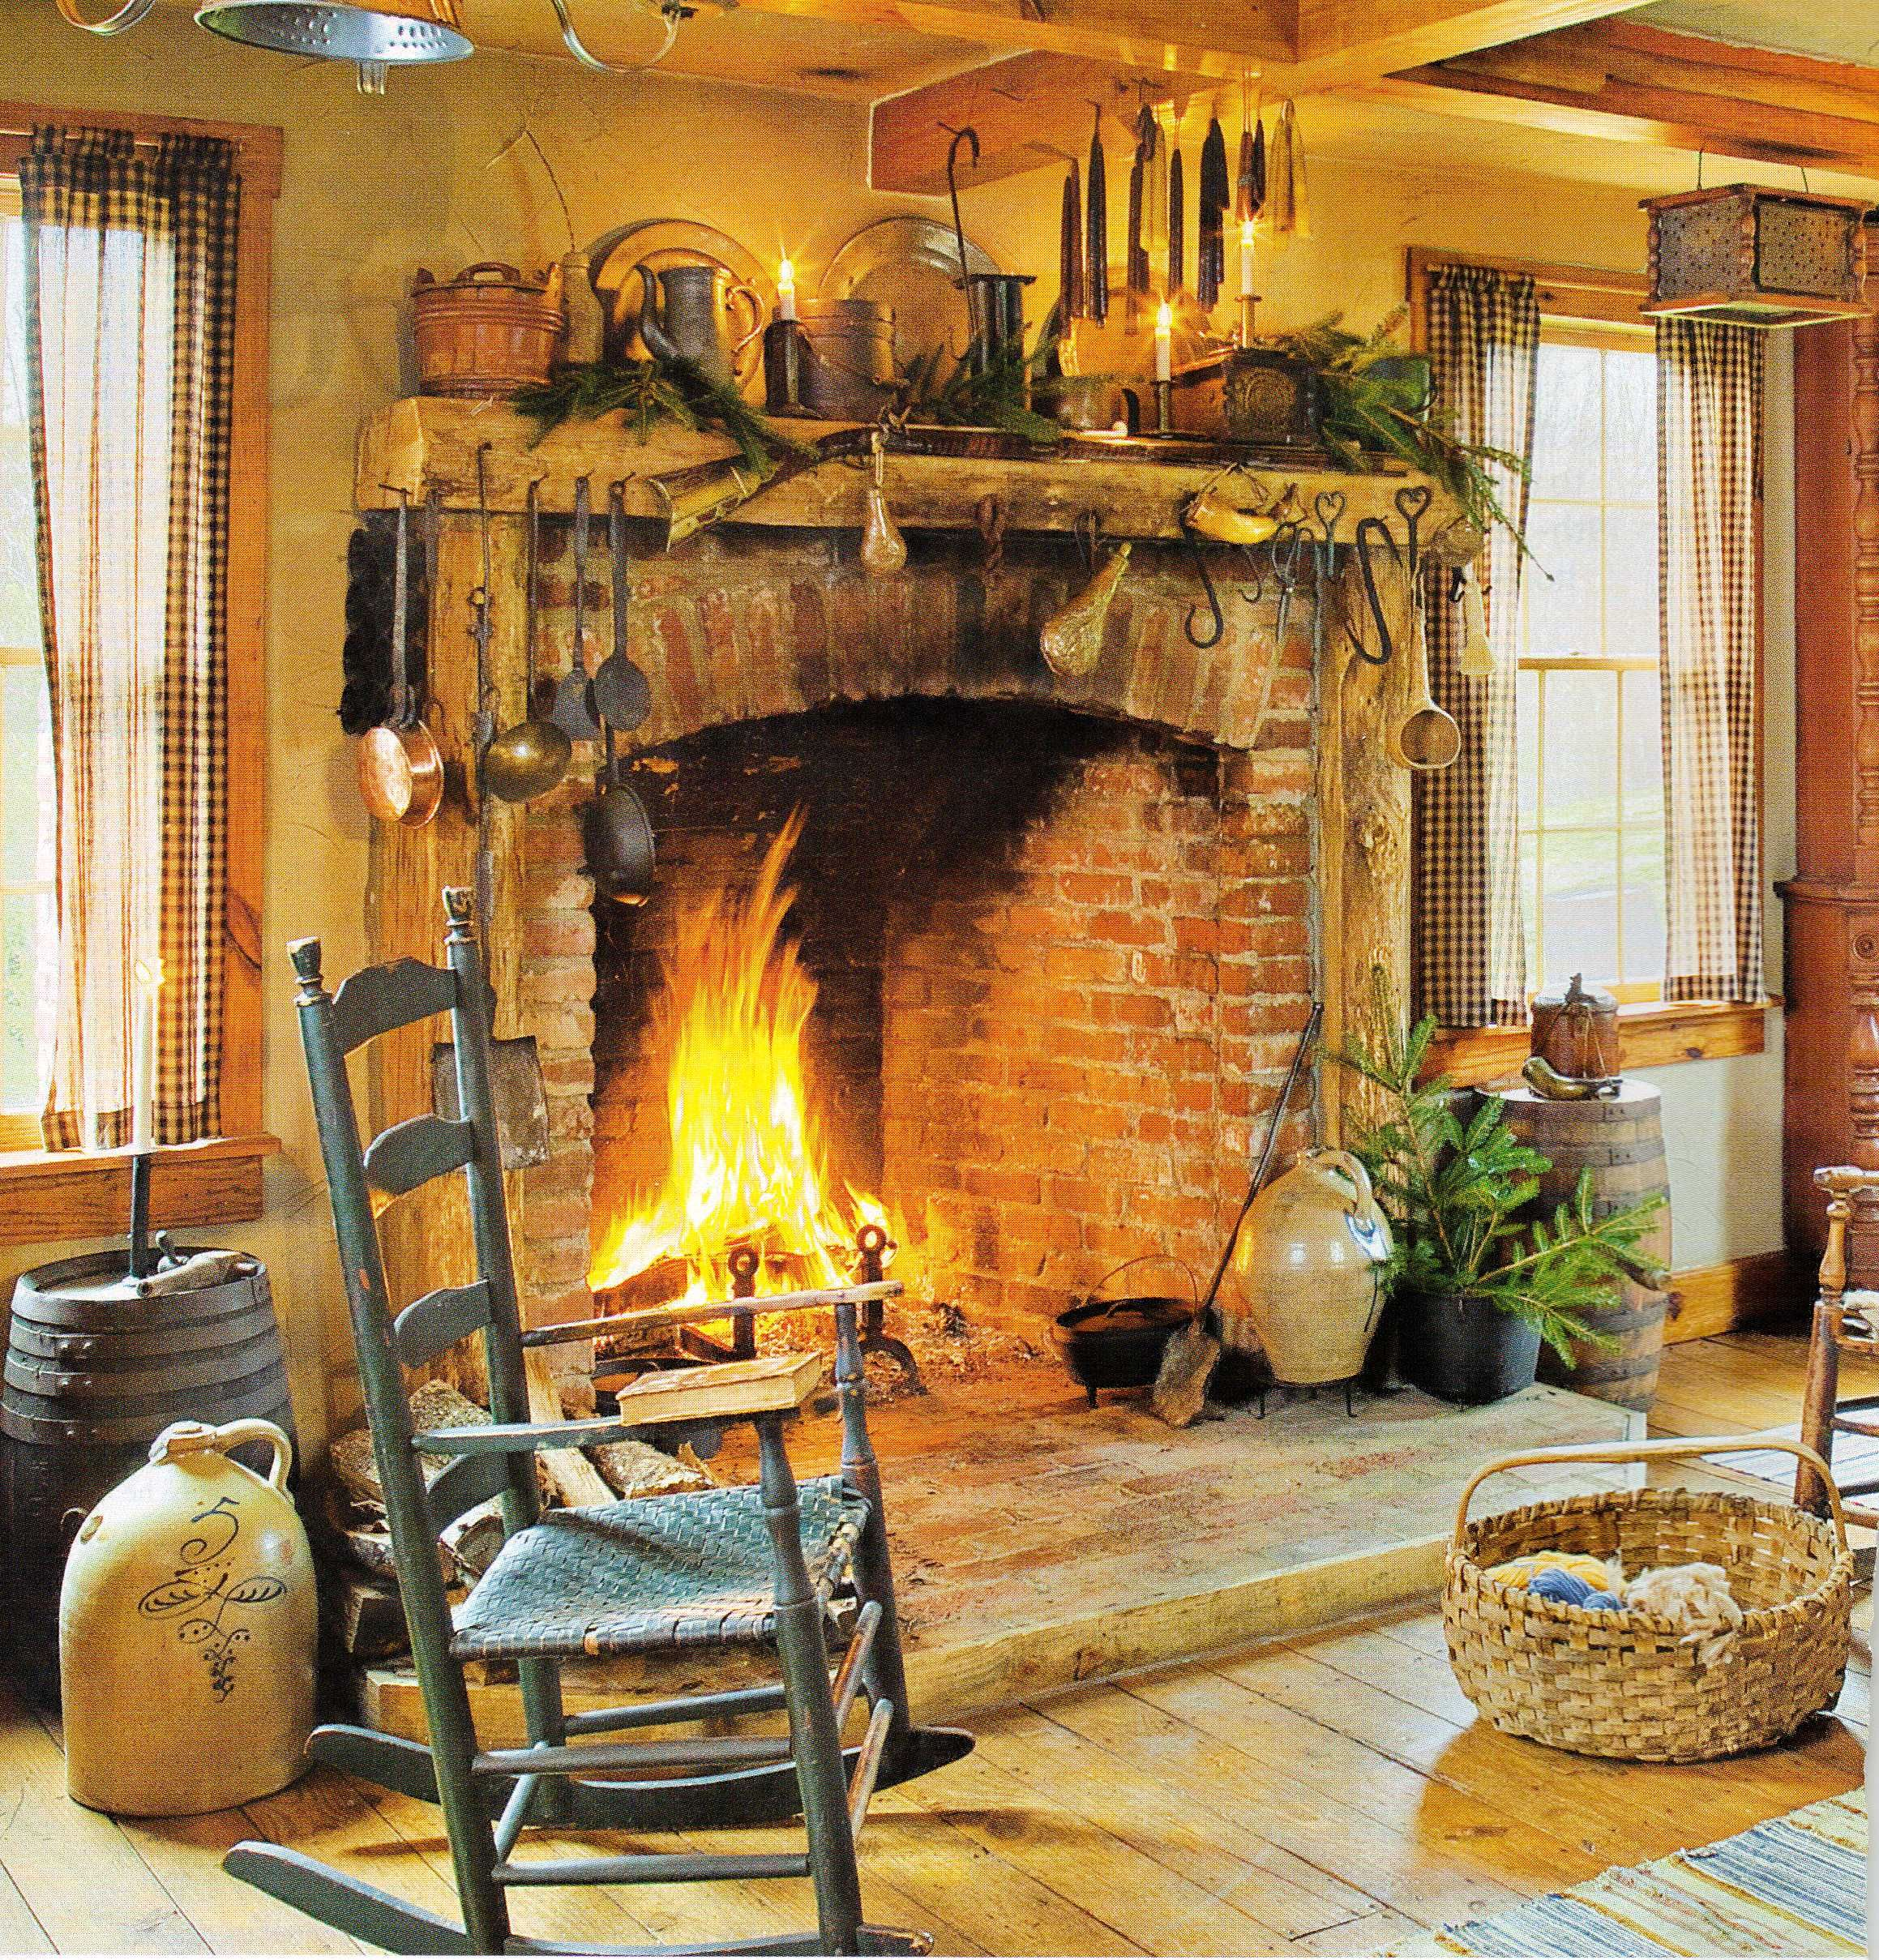 Prim...old Fireplace & Crocks...love This Whole Room